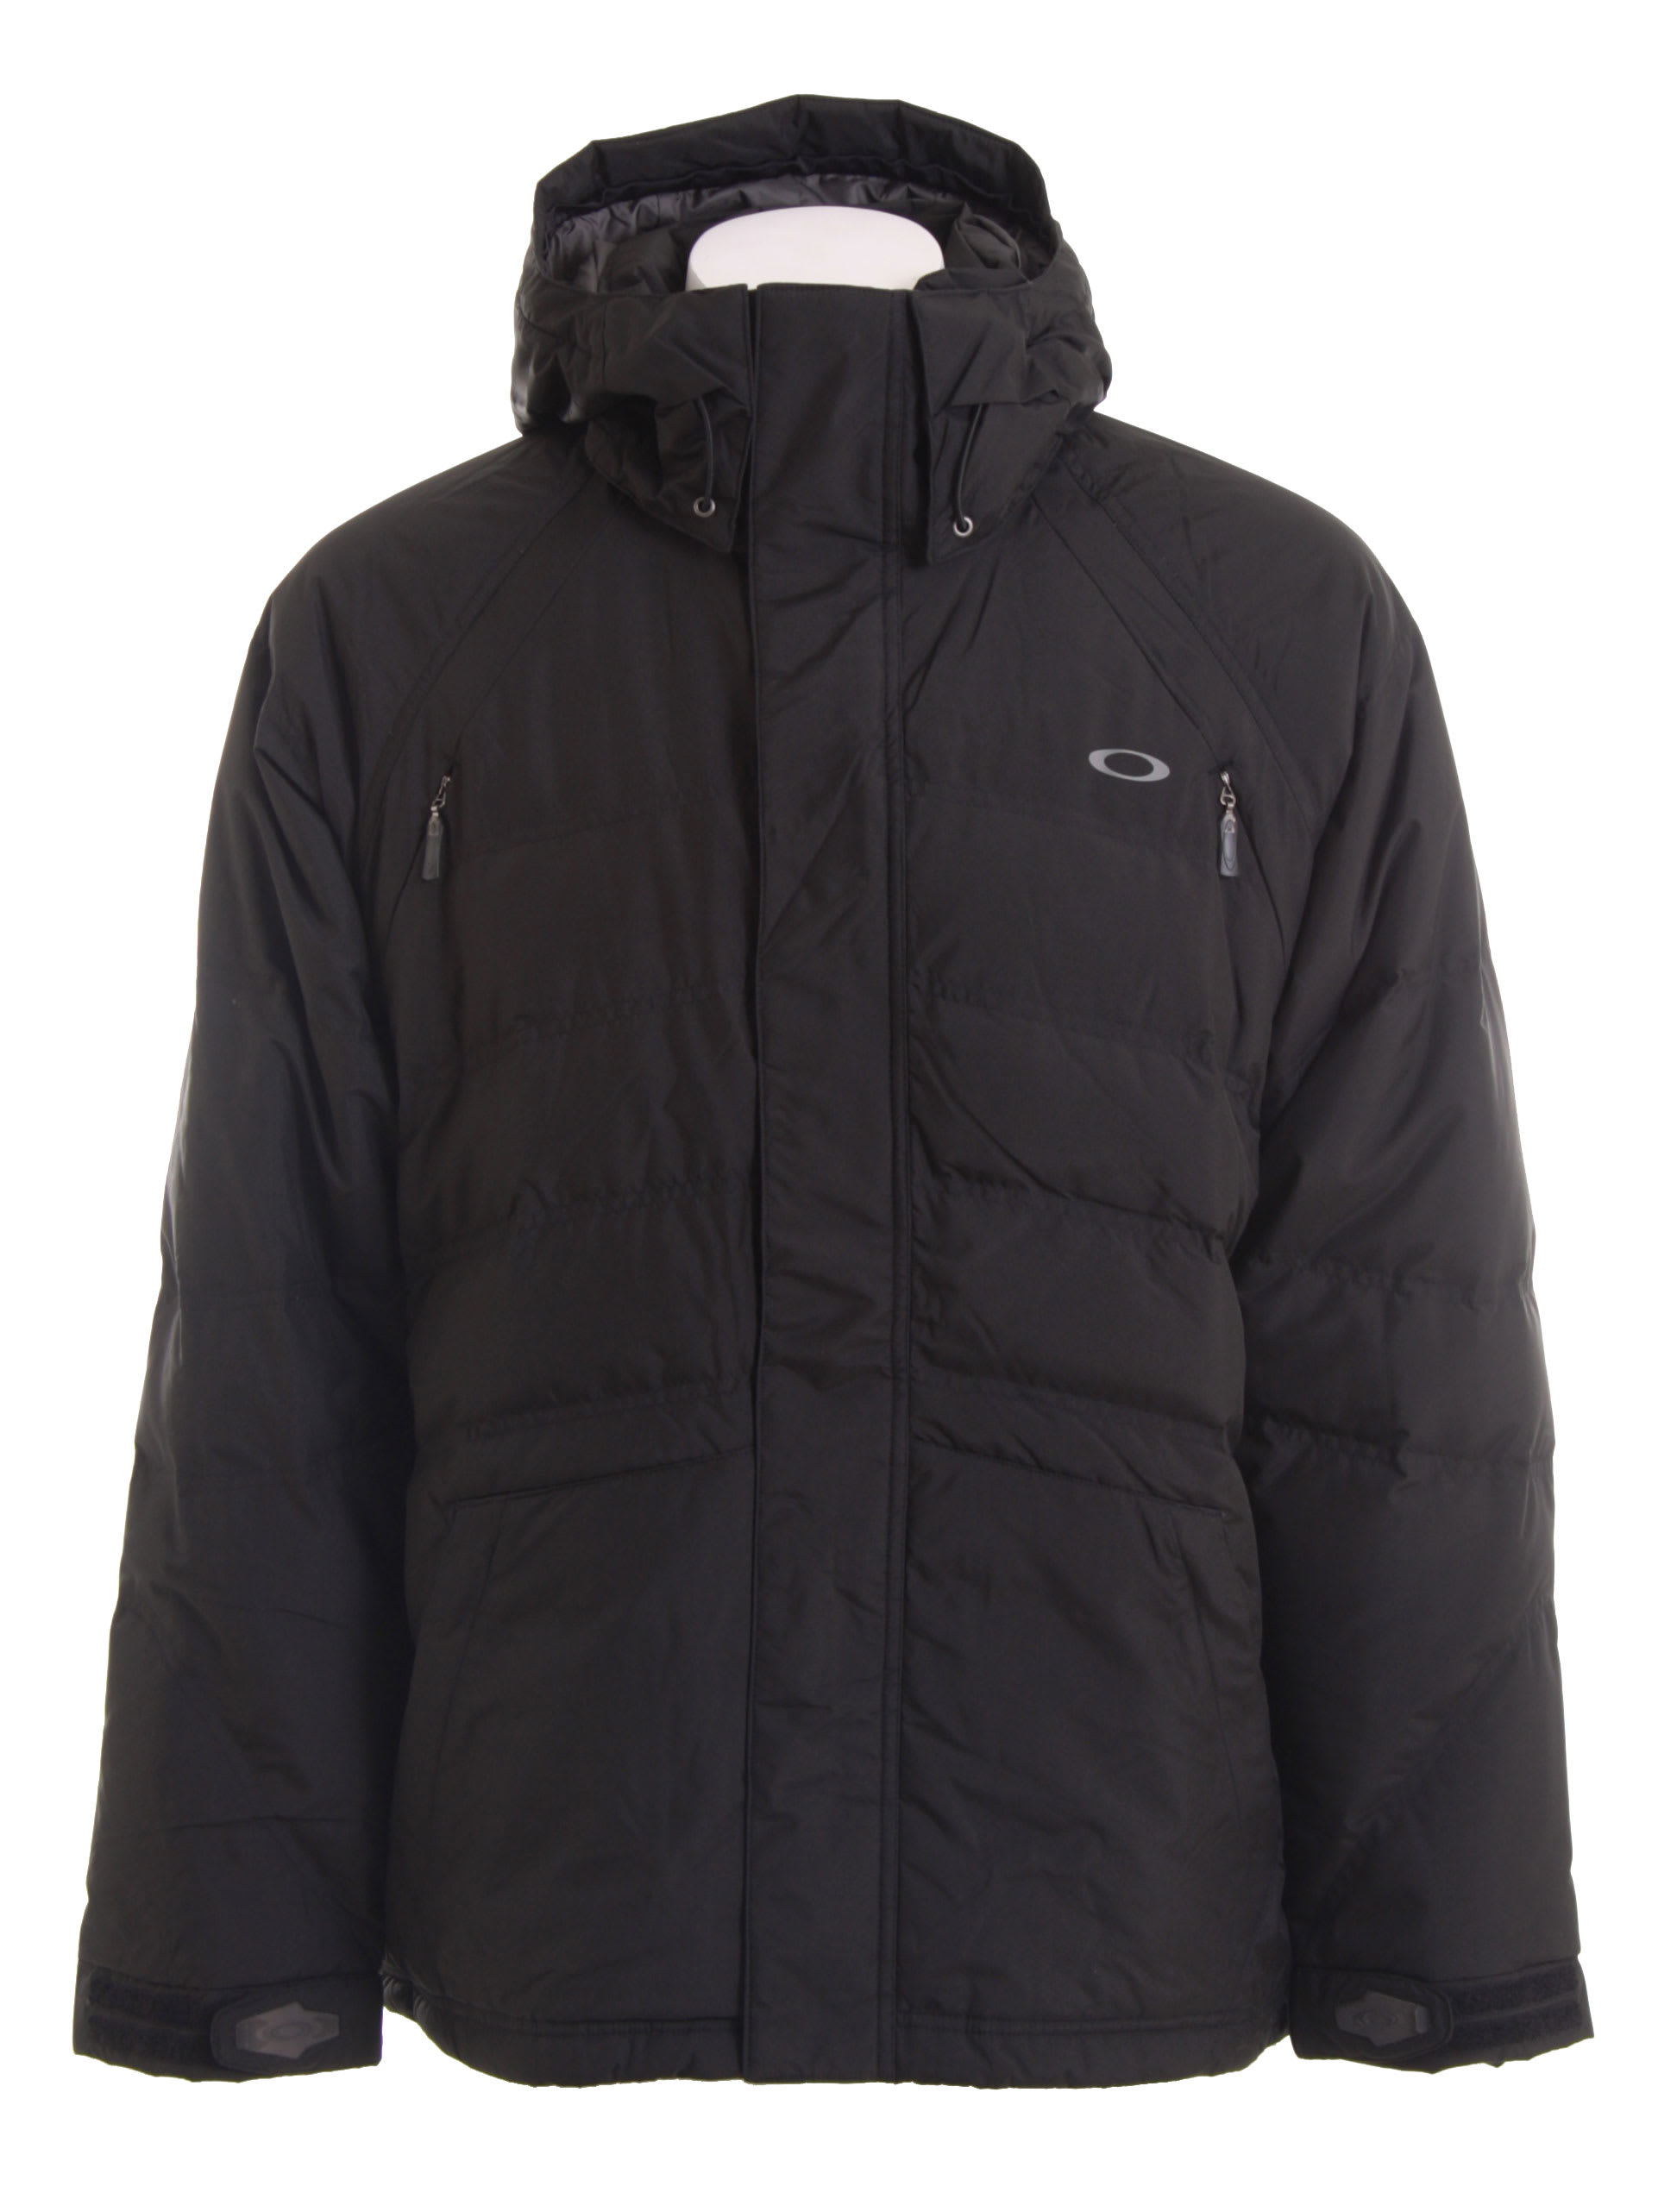 Men's Hooded Puffy Down Parka Coat Jacket (LGT0482-11.27-36) review